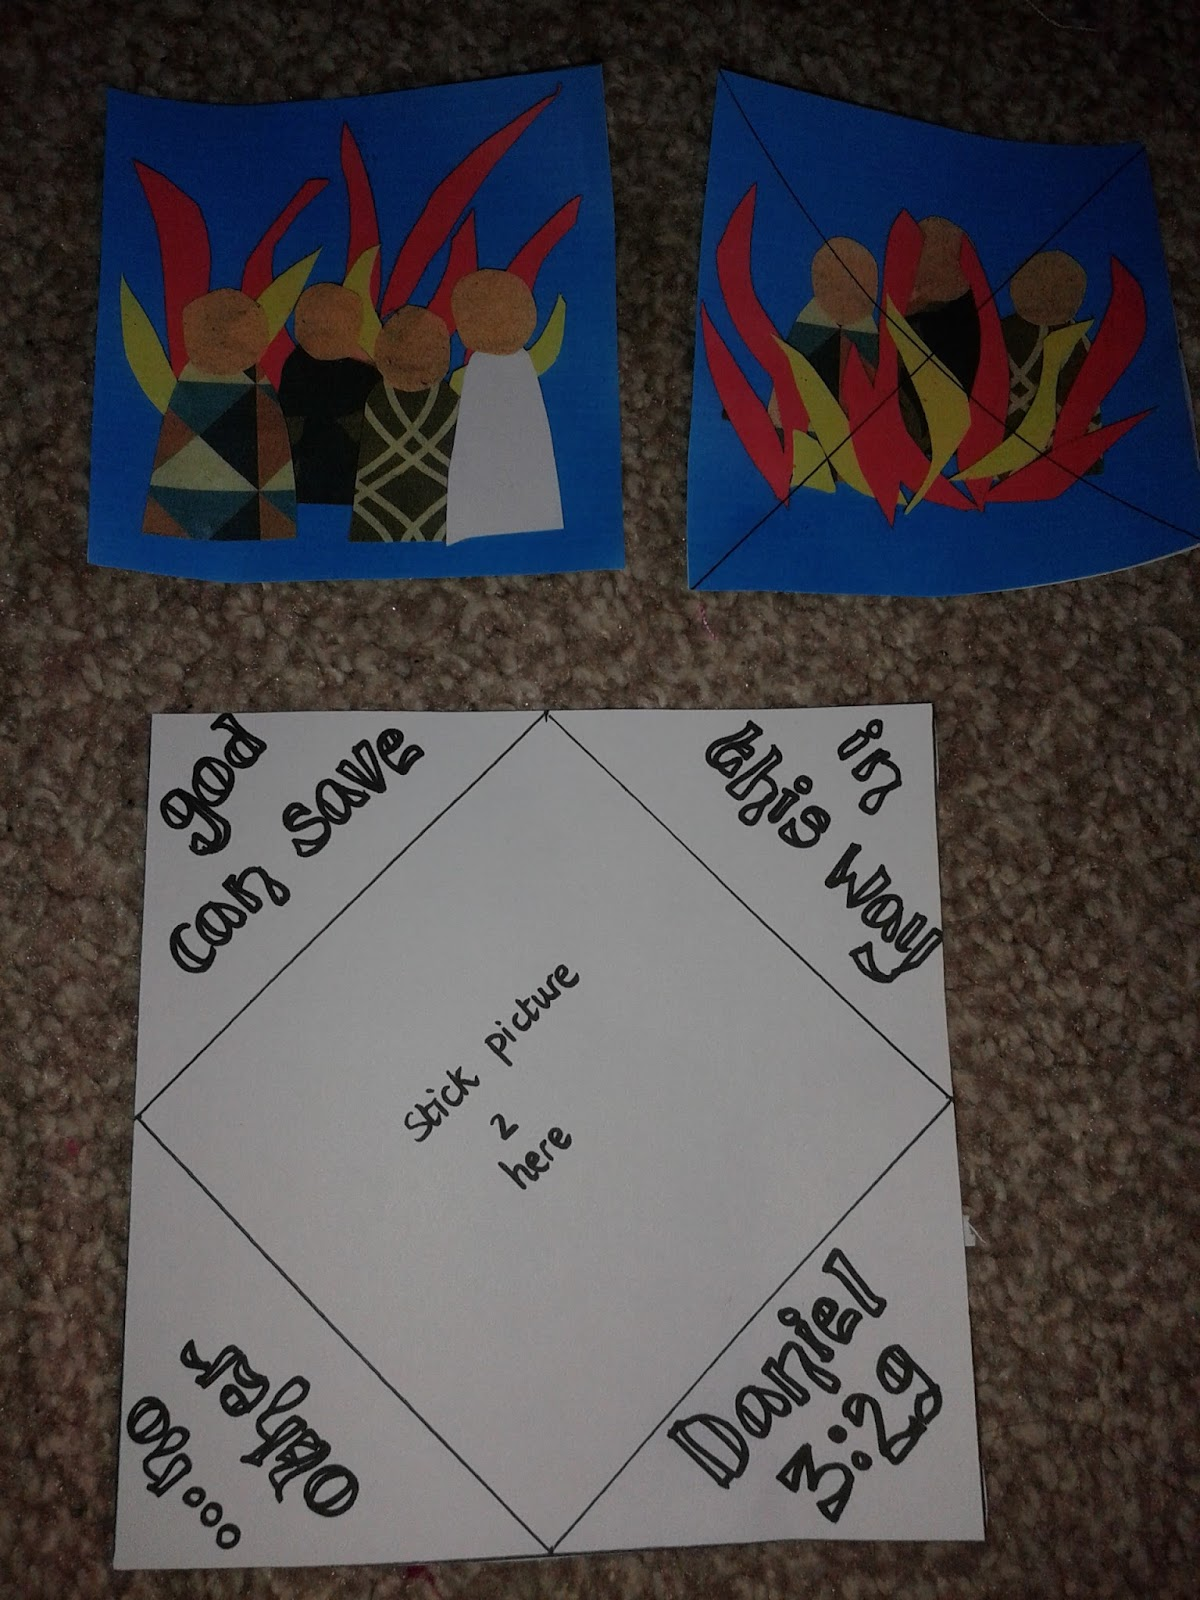 Flame Creative Children S Ministry Shadrach Meshach And Abednego In The Fiery Furnace Craft